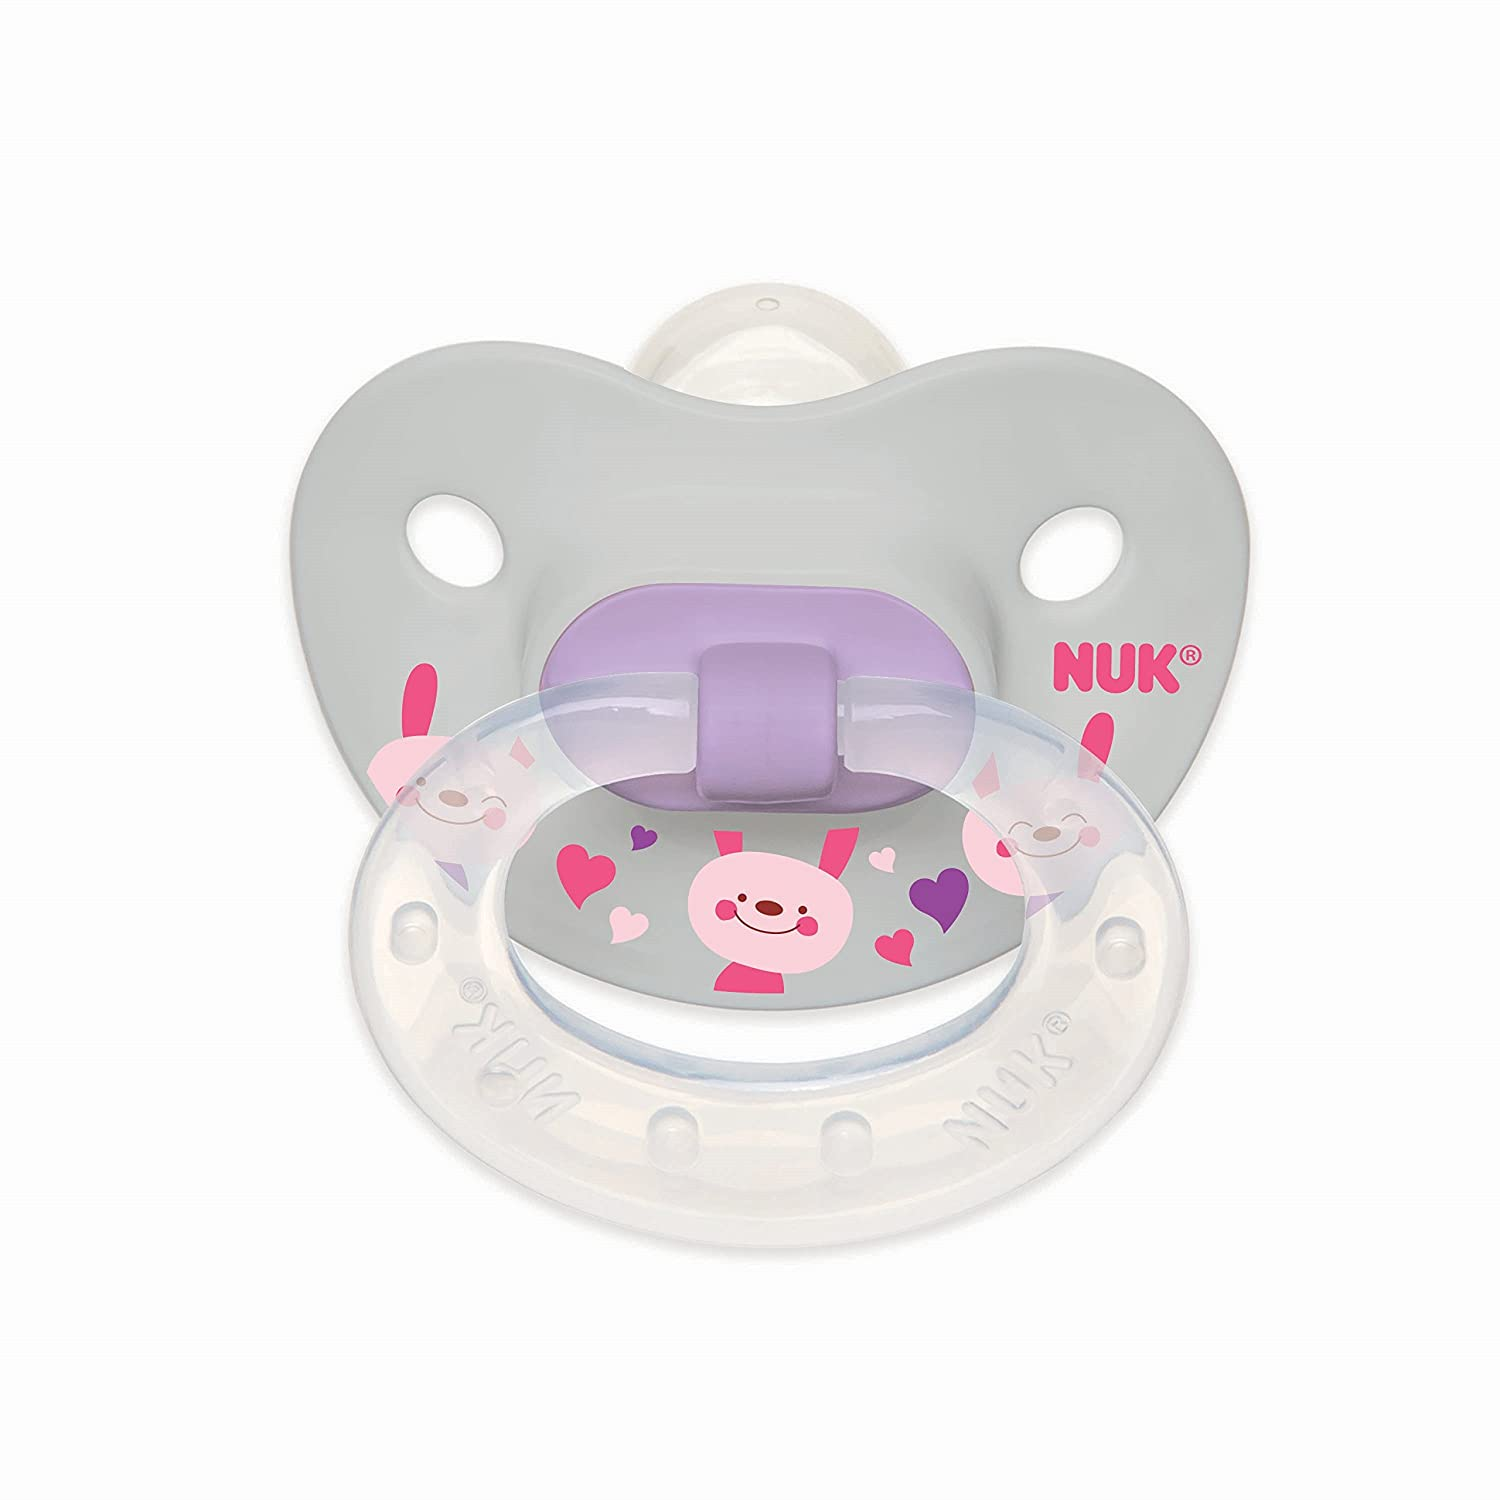 NUK Orthodontic Pacifiers (0-6m) 3 count, Value Pack, Silicone, Girl Designs